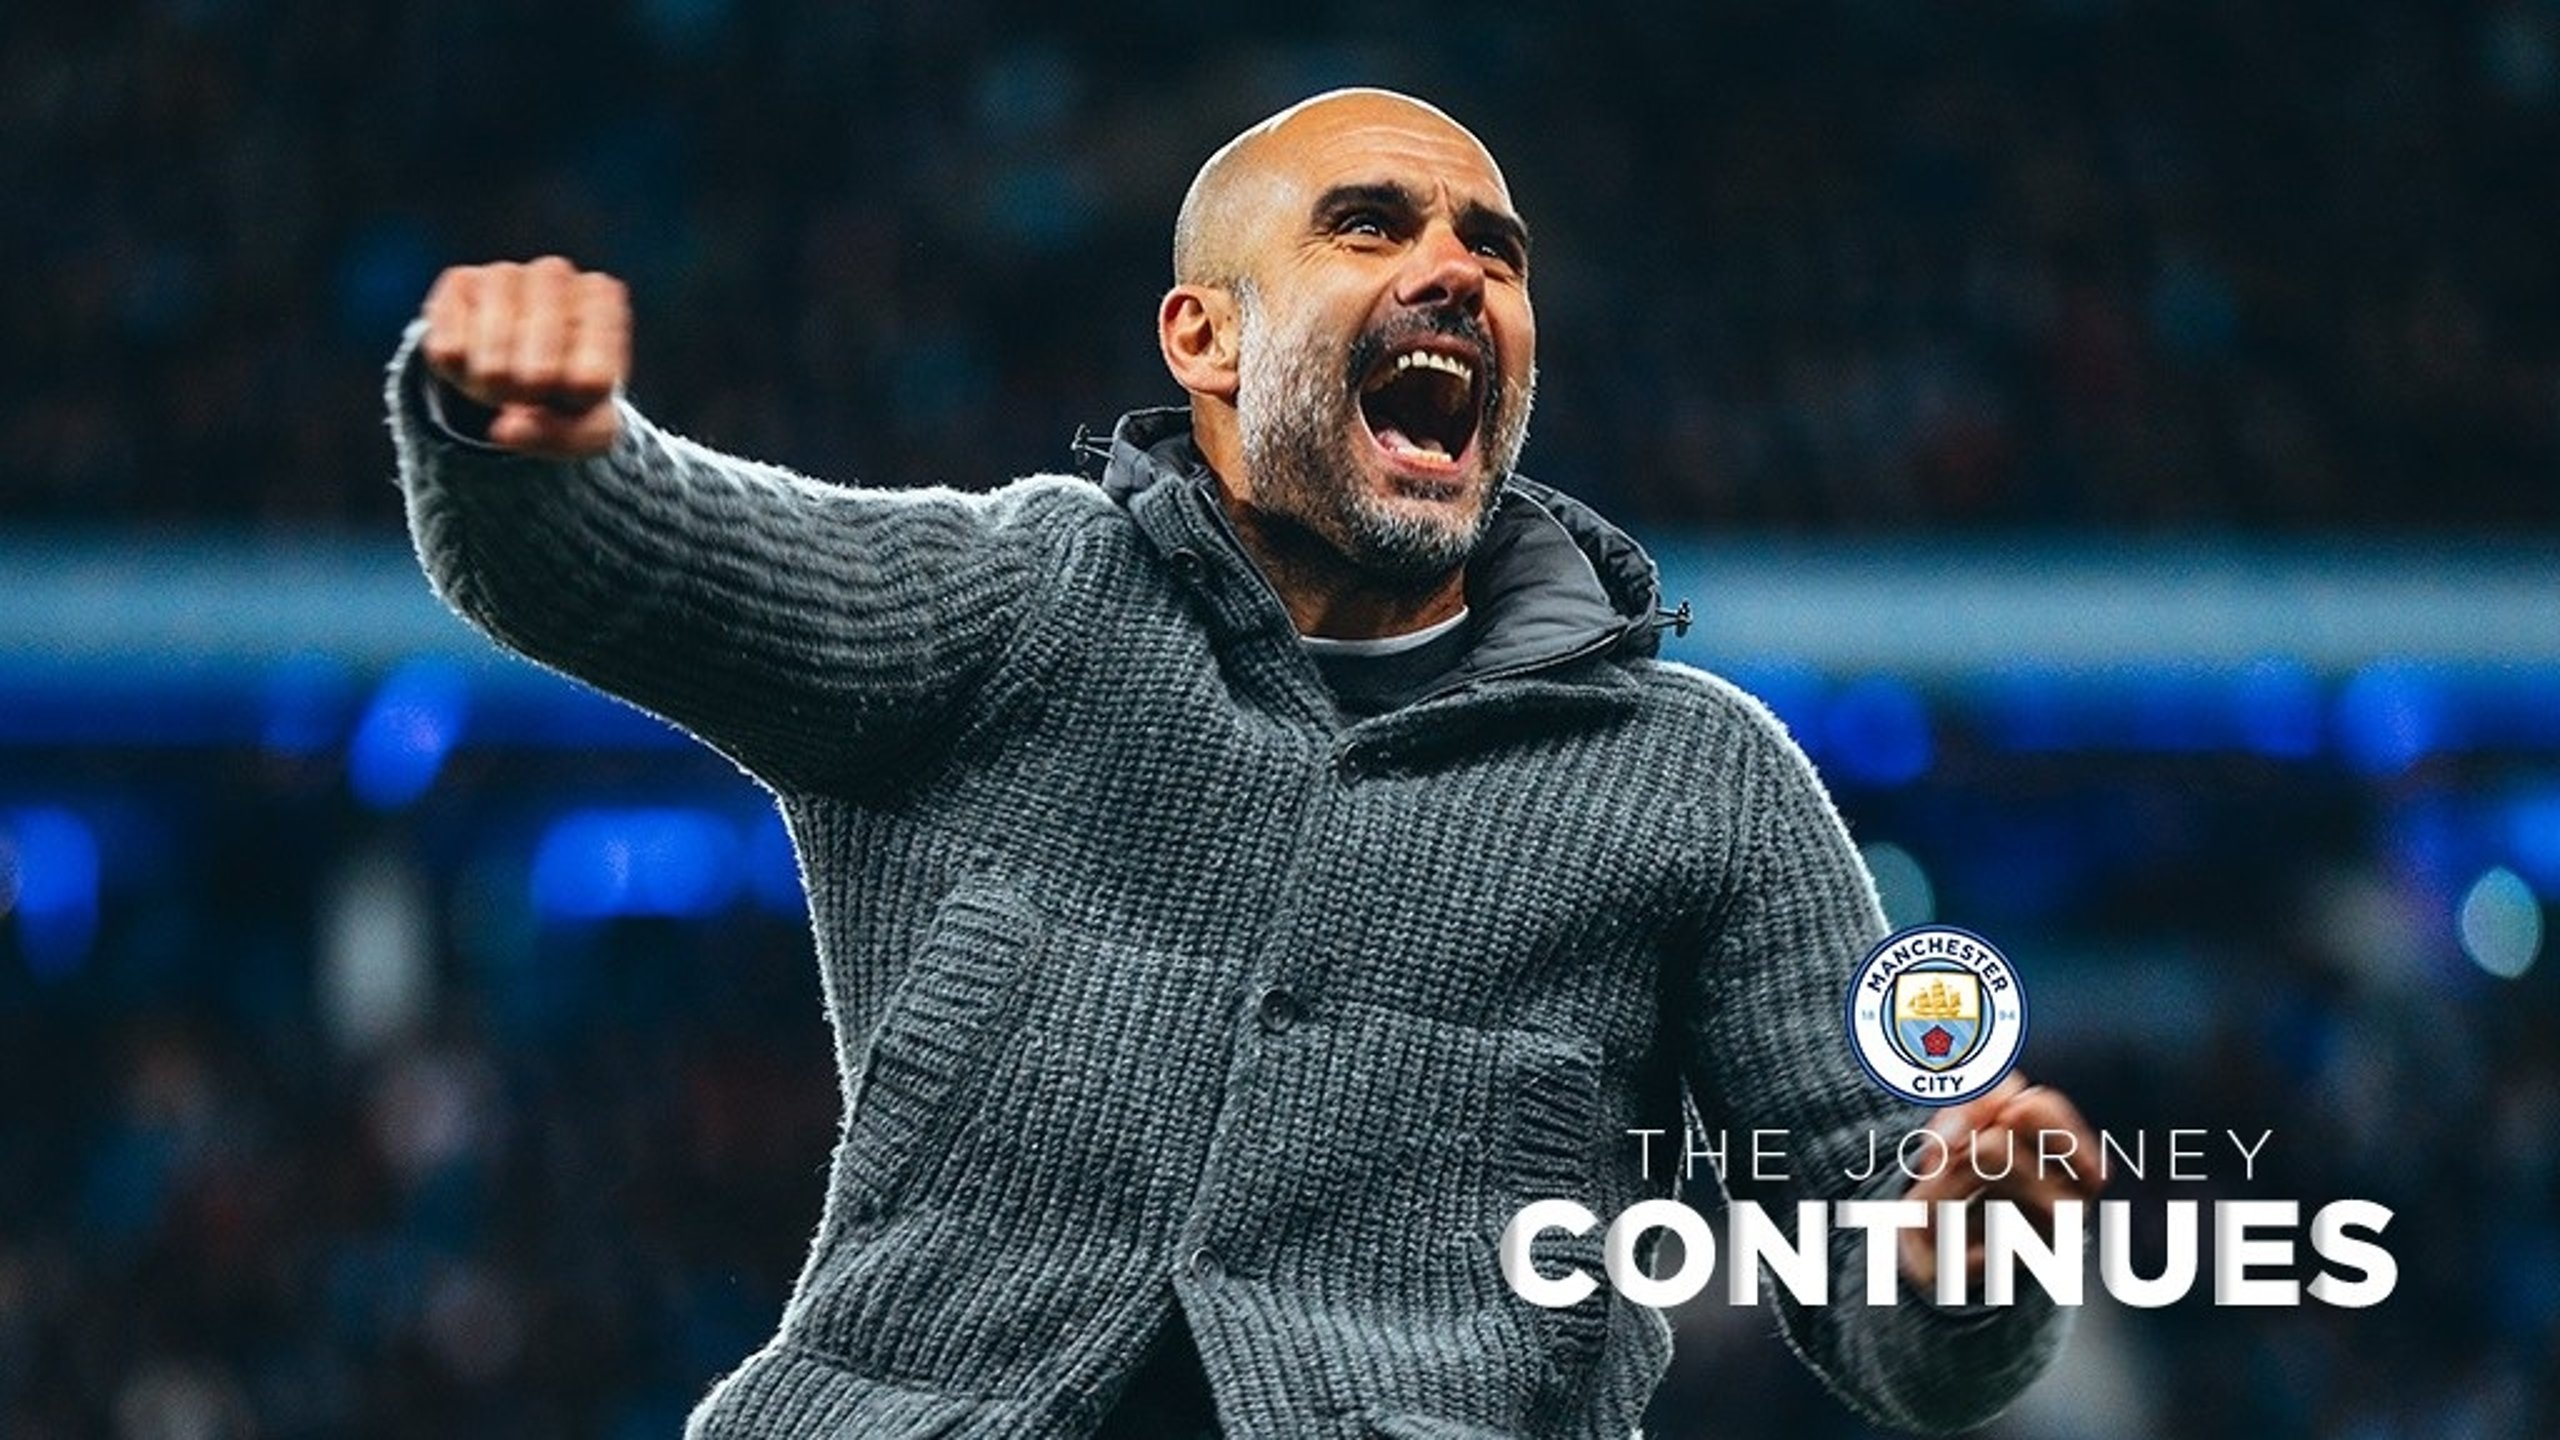 Gallery: Pep's passion and glory